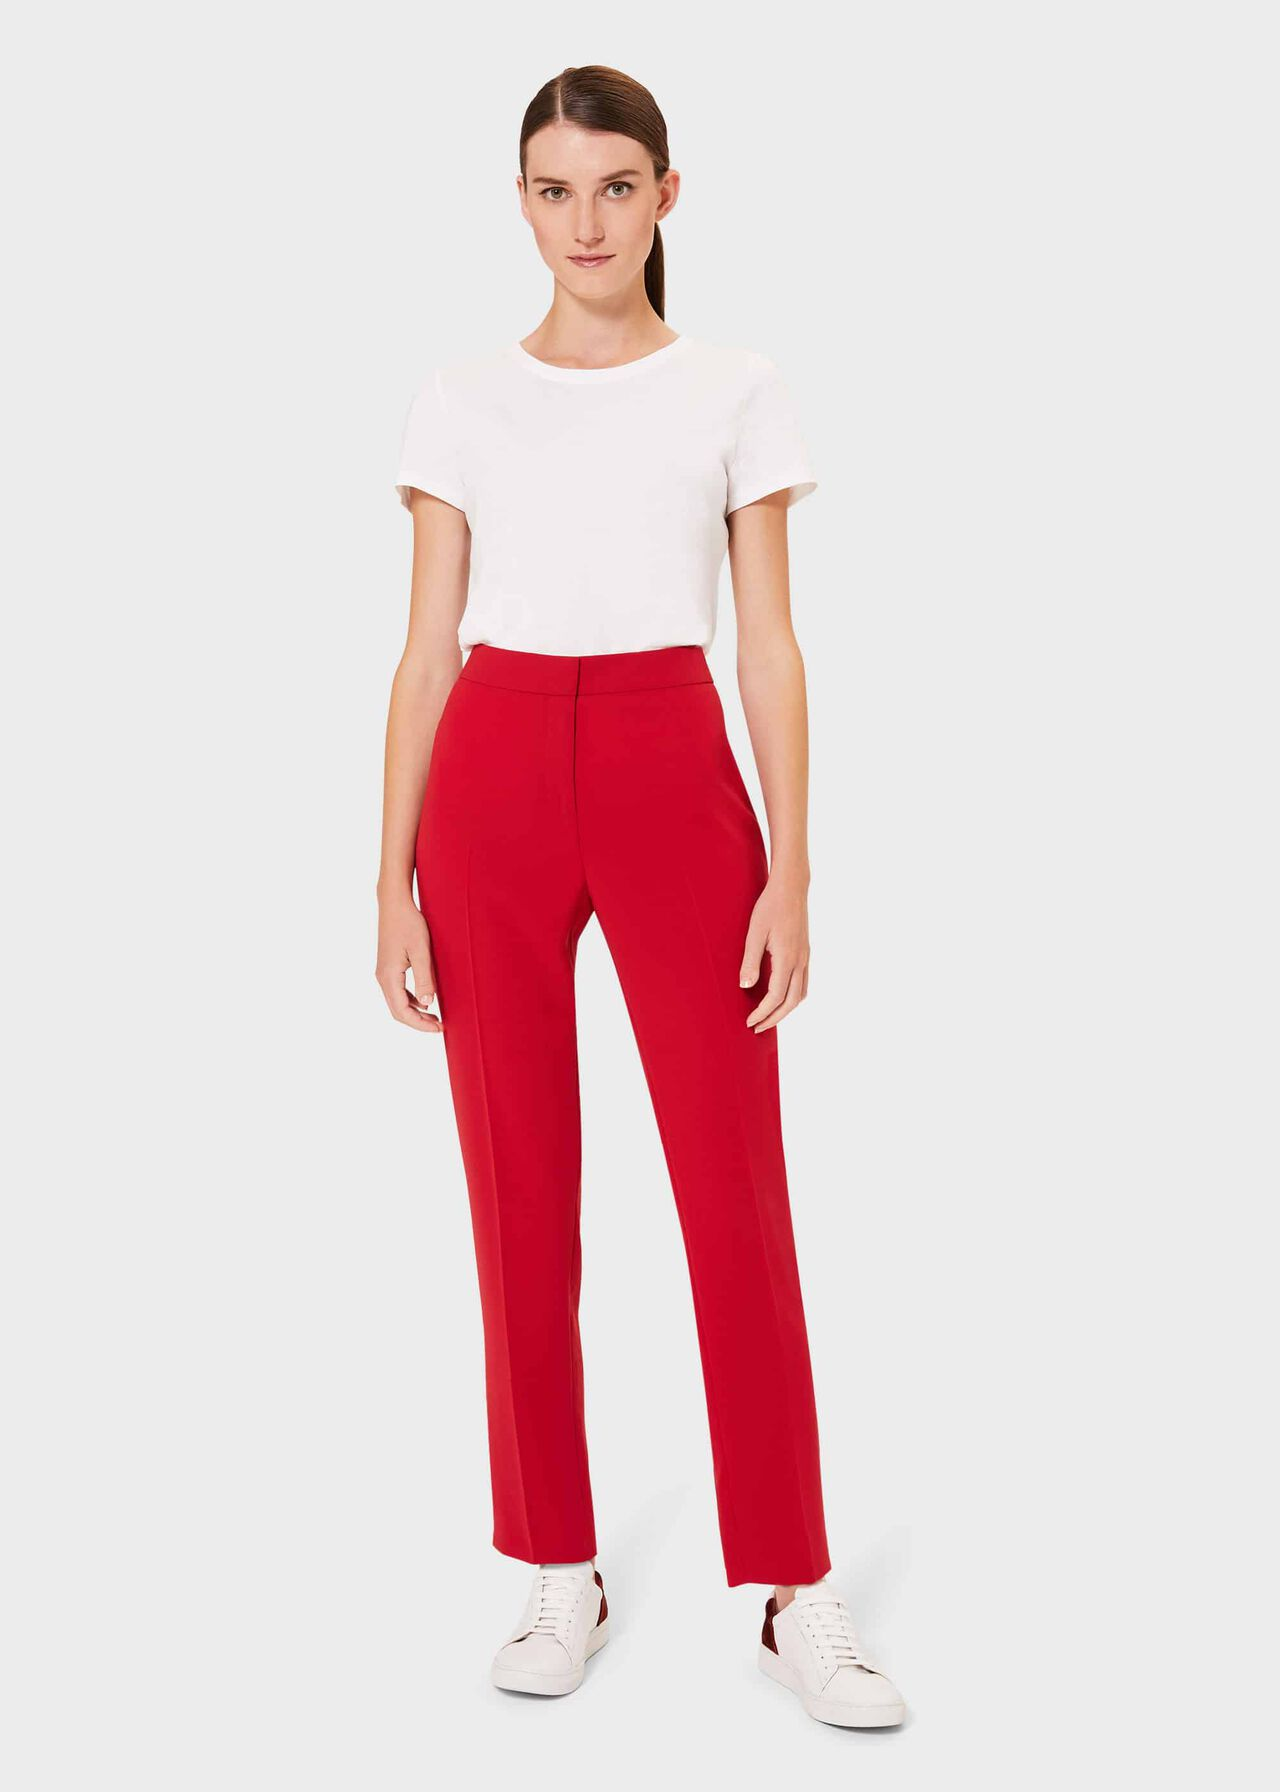 Zinnia Tapered trousers, Red, hi-res